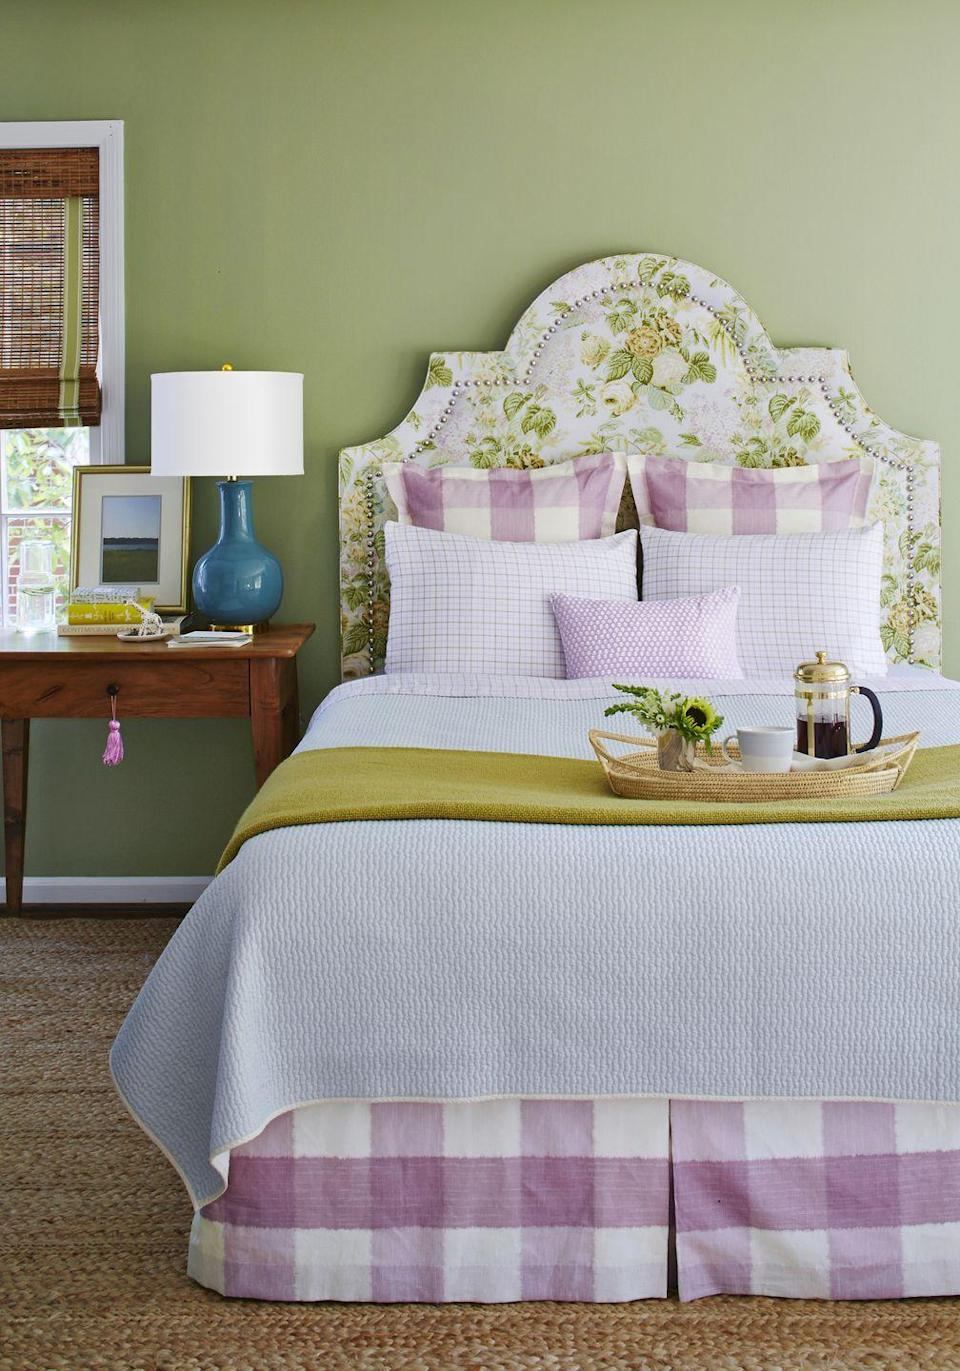 """<p>Nature always provides the best color inspiration. In this pretty, well-appointed bedroom, the wall's rich earthy green color is pulled right from the leafy greens of the headboard's floral fabric. The green hue feels especially feminine when paired with a pretty purple. </p><p><strong>Get the Look: </strong><br>Wall Paint Color: <a href=""""https://go.redirectingat.com?id=74968X1596630&url=https%3A%2F%2Fwww.farrow-ball.com%2Fen-us%2Fpaint-colours%2Folive&sref=https%3A%2F%2Fwww.countryliving.com%2Fremodeling-renovation%2Fhome-makeovers%2Fg32468539%2Fbest-bedroom-paint-colors-ideas%2F"""" rel=""""nofollow noopener"""" target=""""_blank"""" data-ylk=""""slk:Olive by Farrow & Ball"""" class=""""link rapid-noclick-resp"""">Olive by Farrow & Ball</a></p>"""